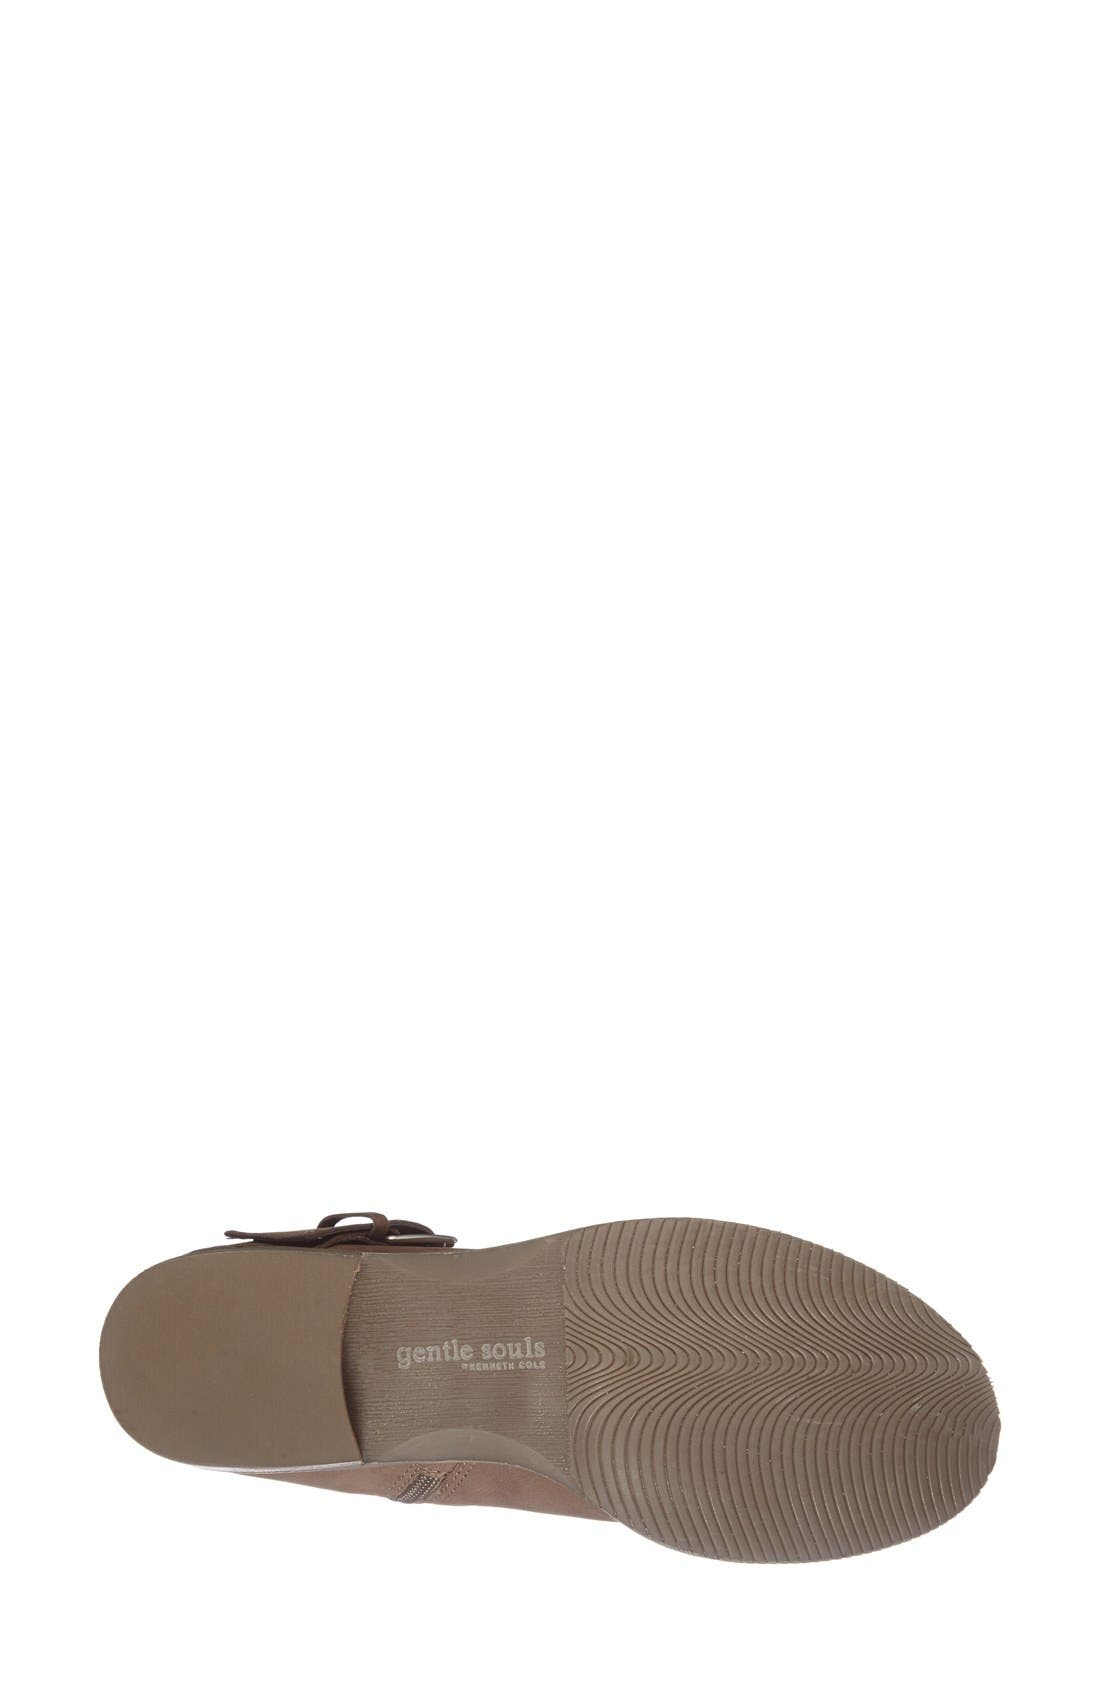 by Kenneth Cole 'Best Of' Boot,                             Alternate thumbnail 4, color,                             Beige Nubuck